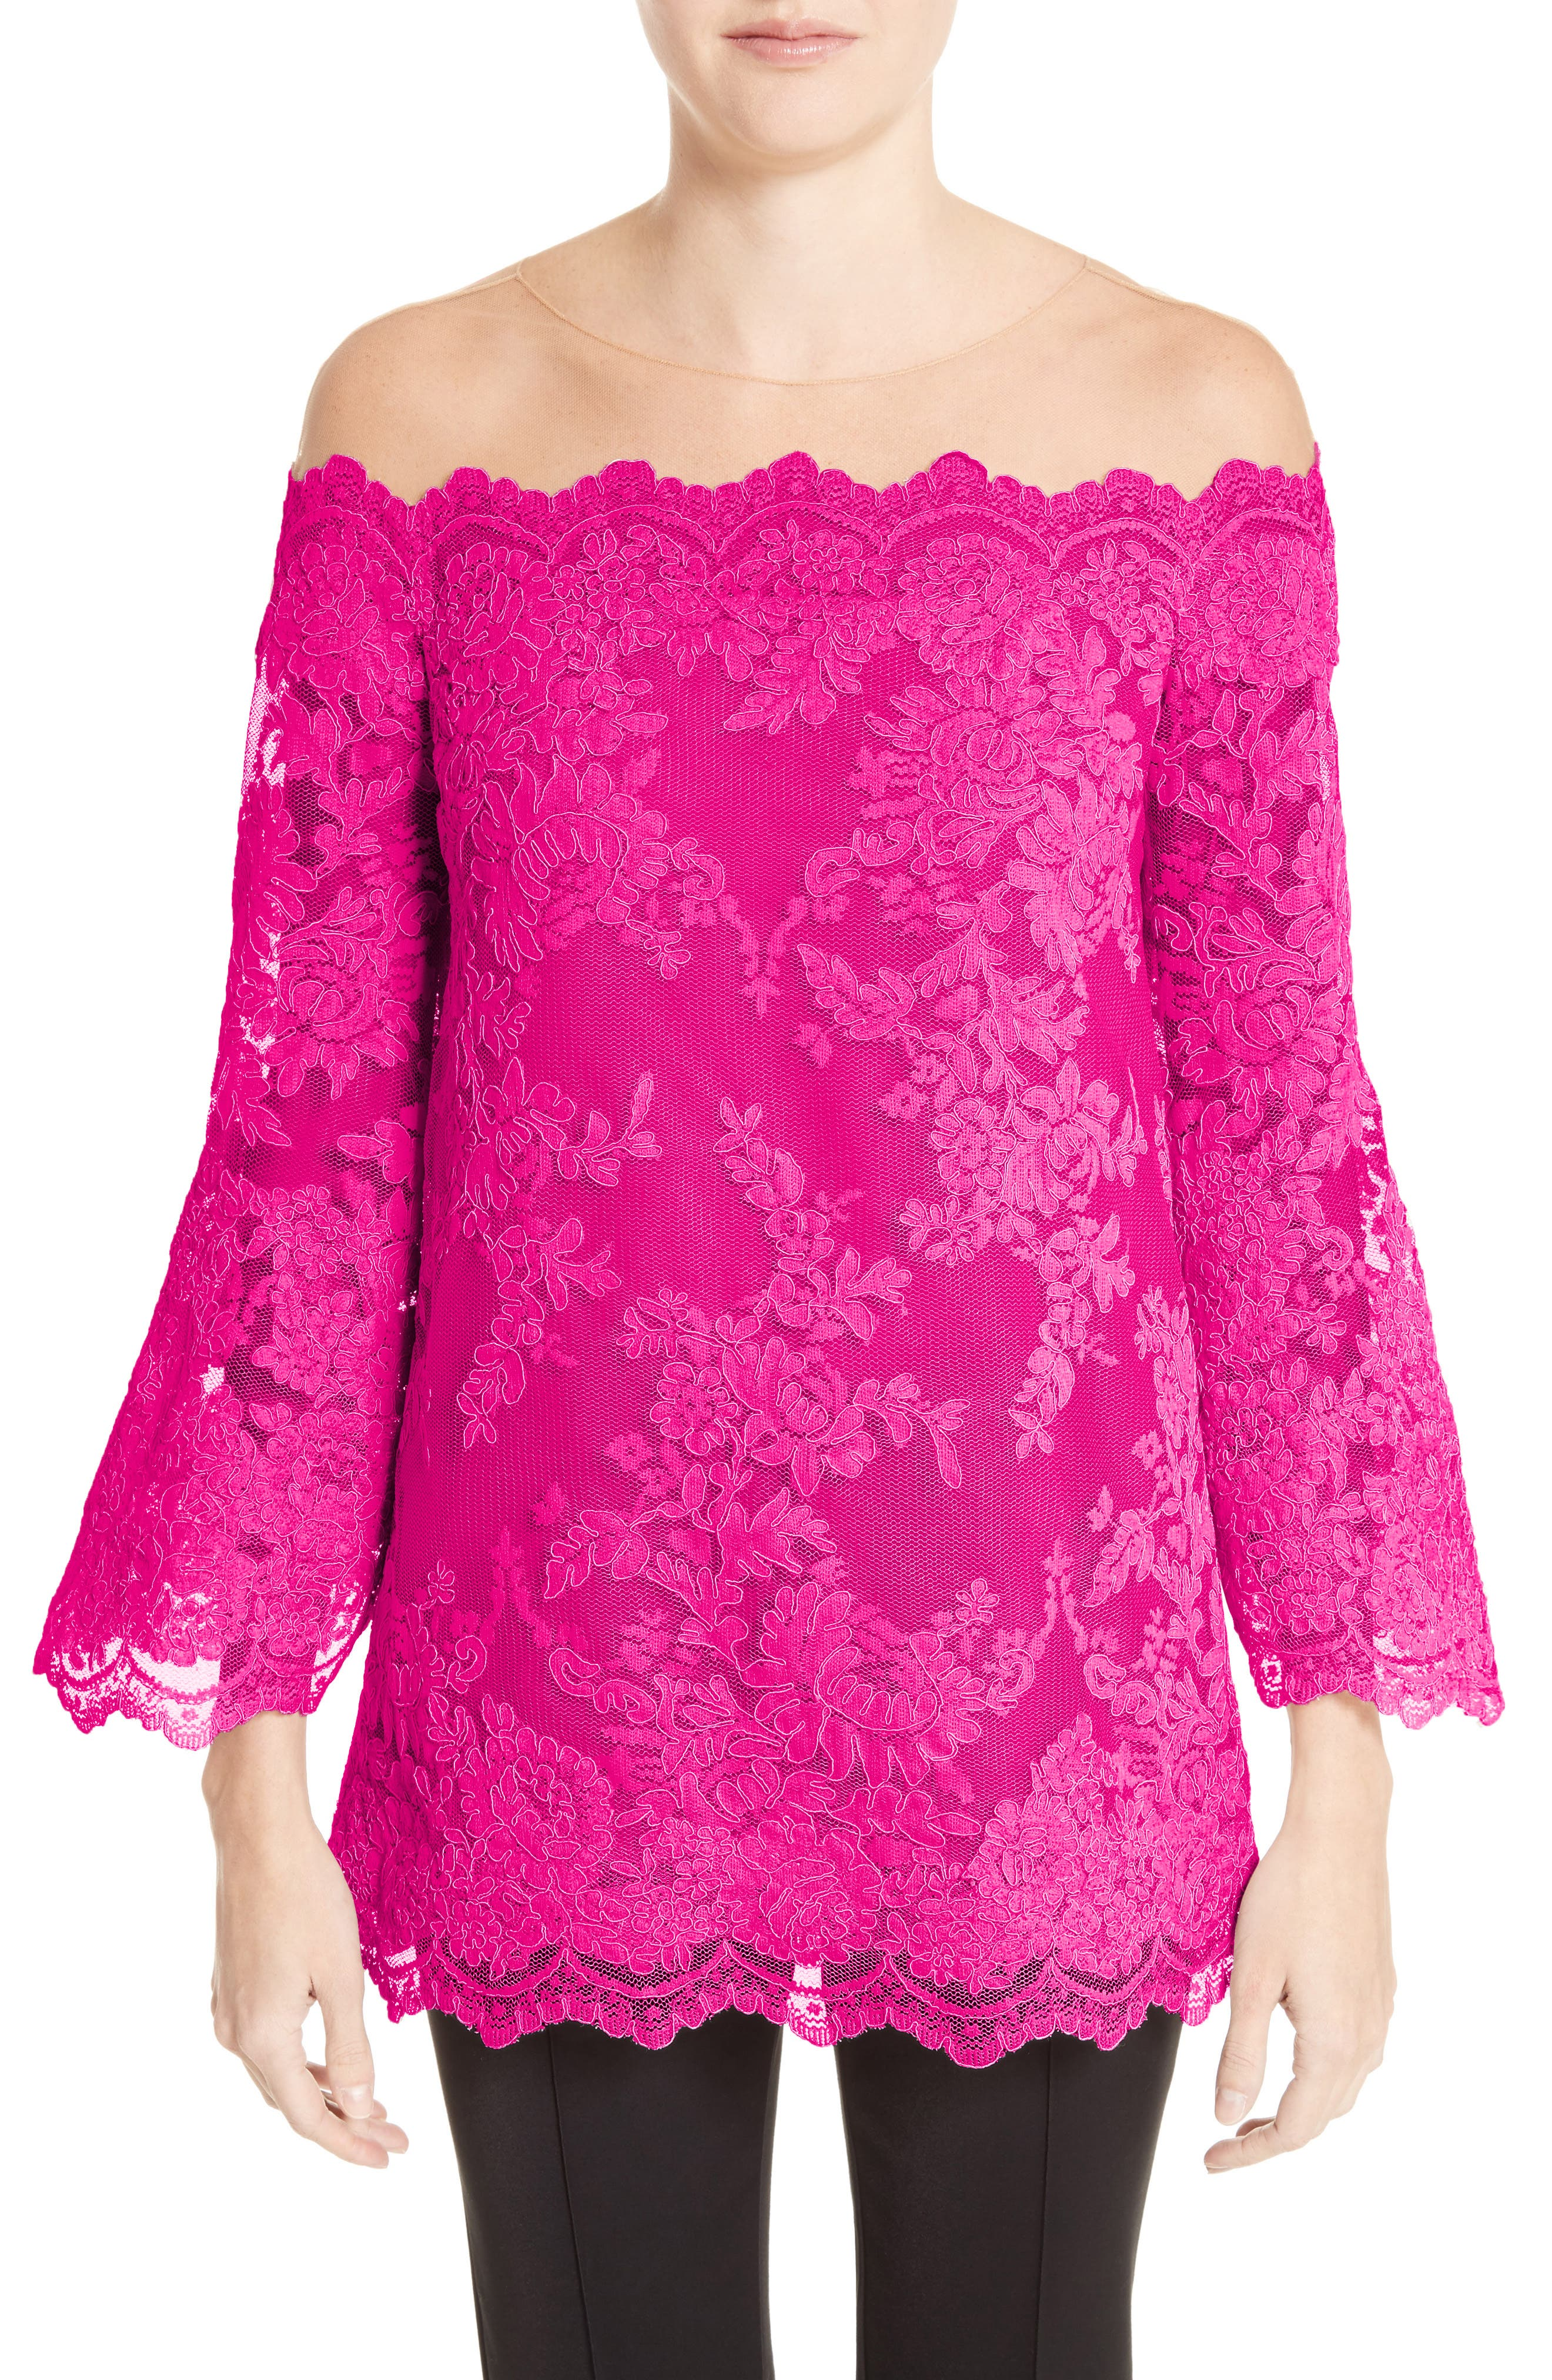 Off The Shoulder Illusion Lace Top,                             Main thumbnail 1, color,                             671